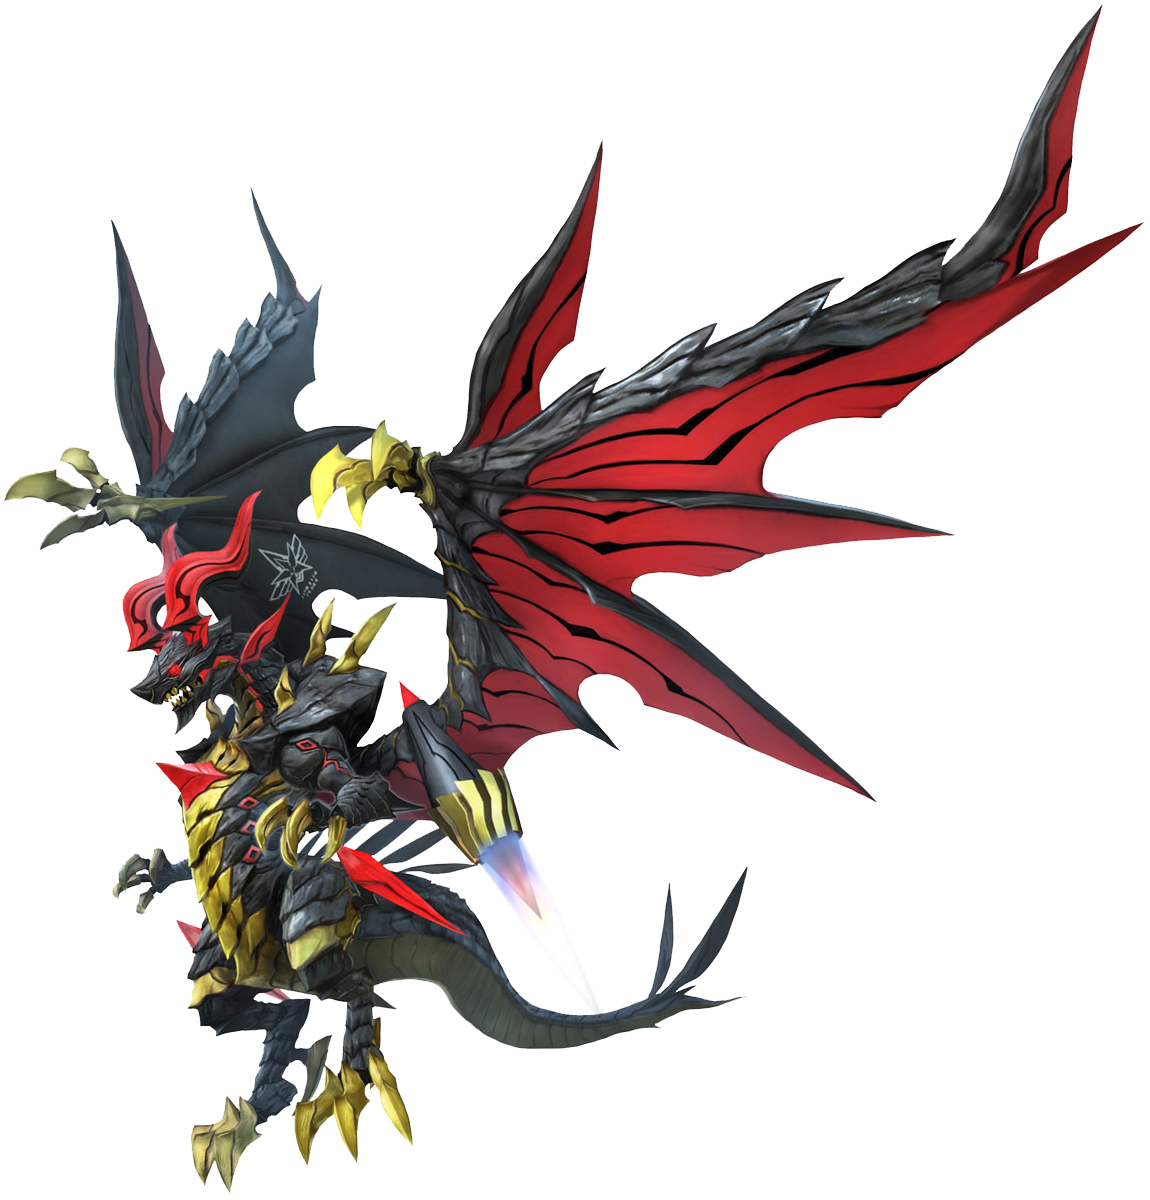 Bahamut (World of Final Fantasy boss)